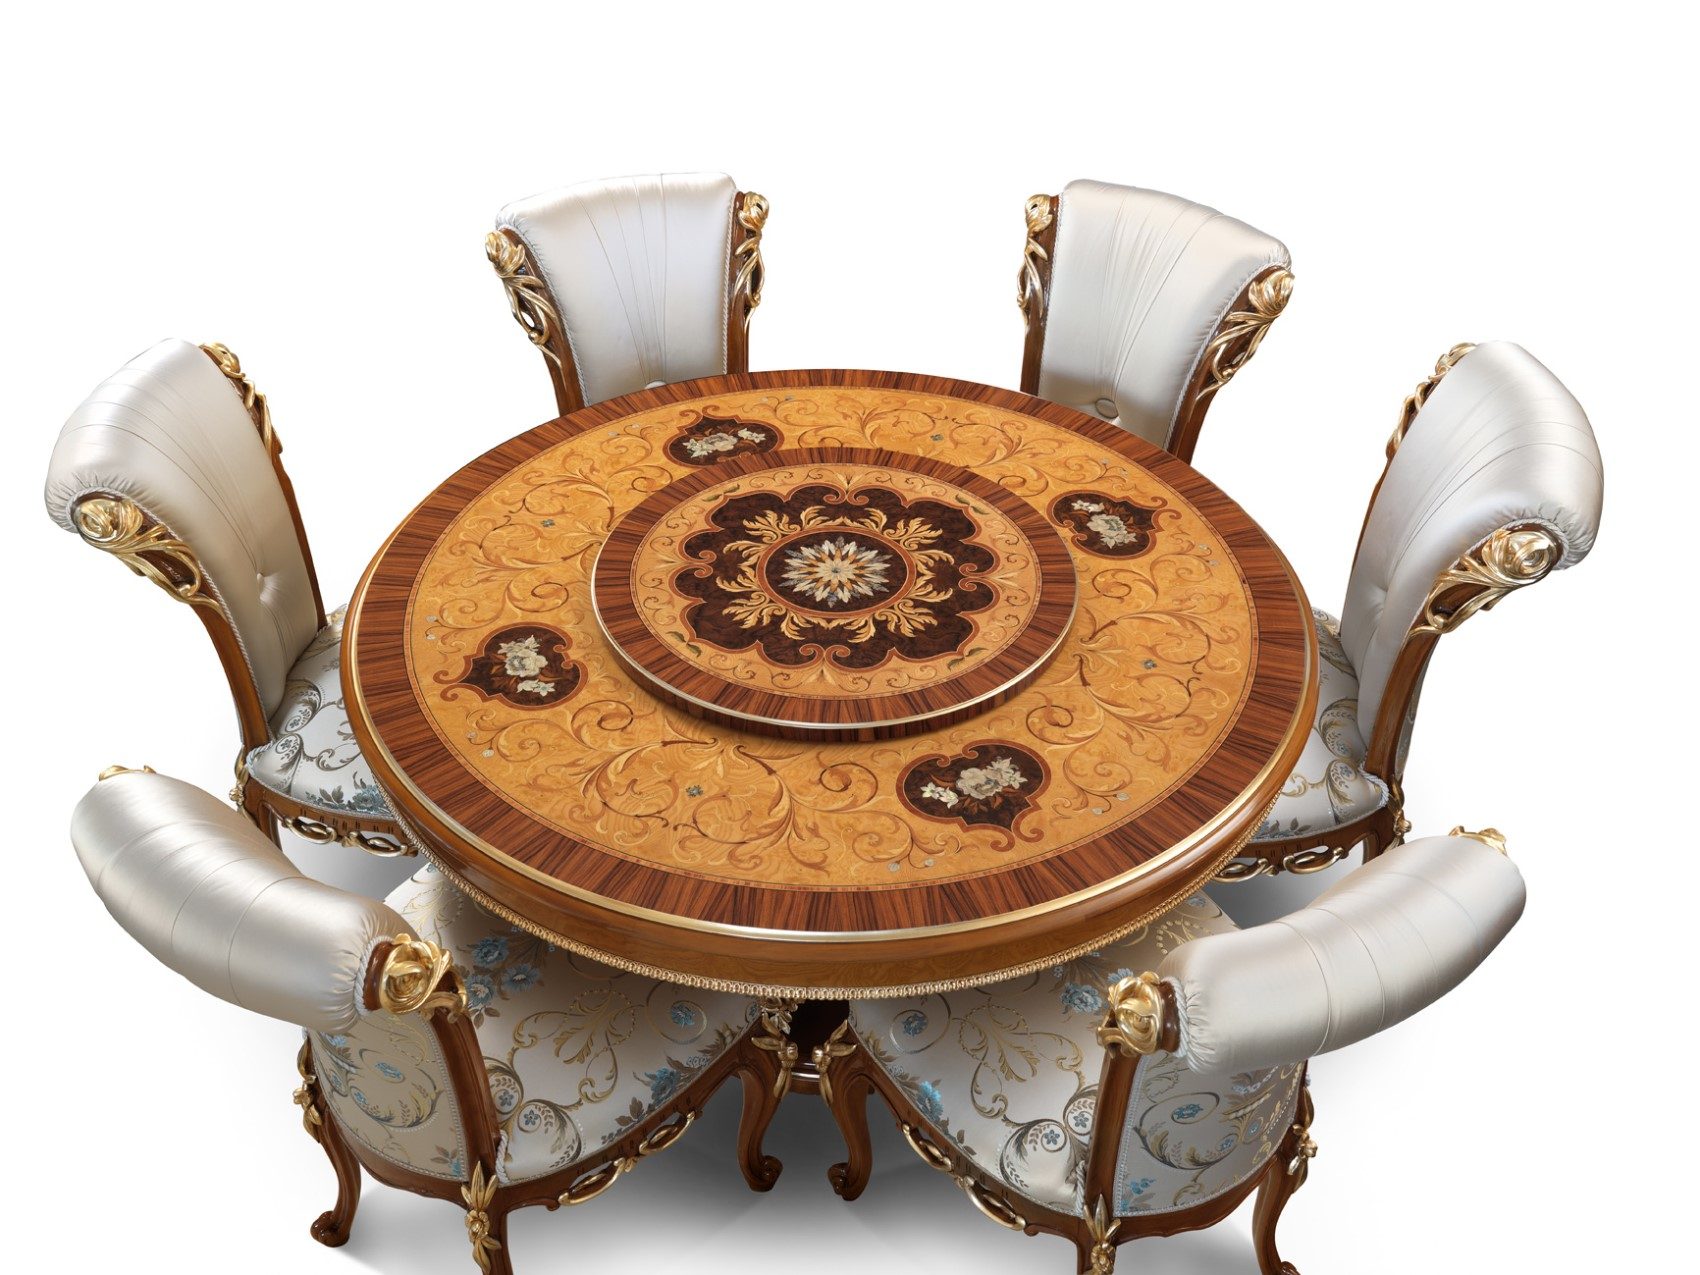 3166 round table with lazy susan, 2641 chair (1700 x 1275)